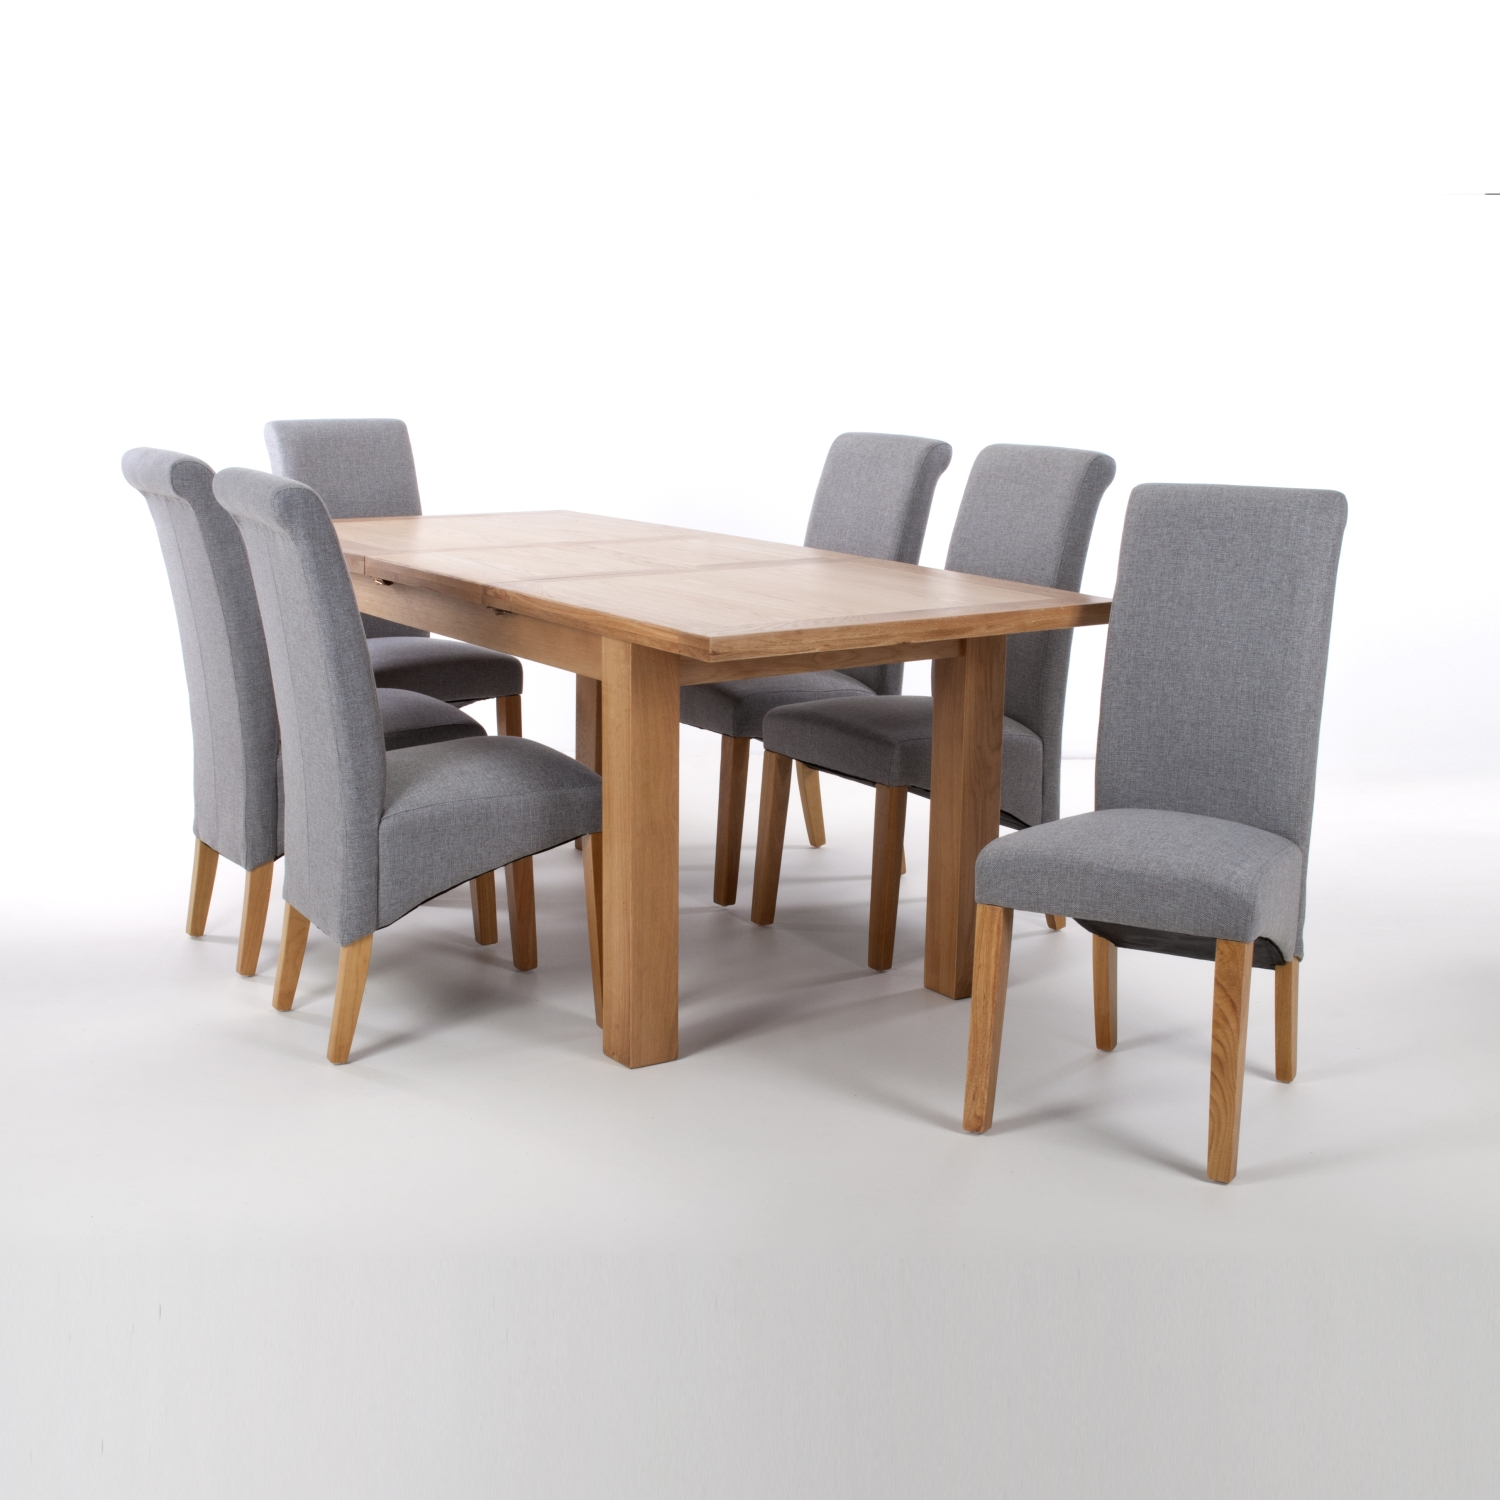 Solid Oak Extendable Dining Table with 6 Scroll Back Chairs in Linen Effect Sliver Grey